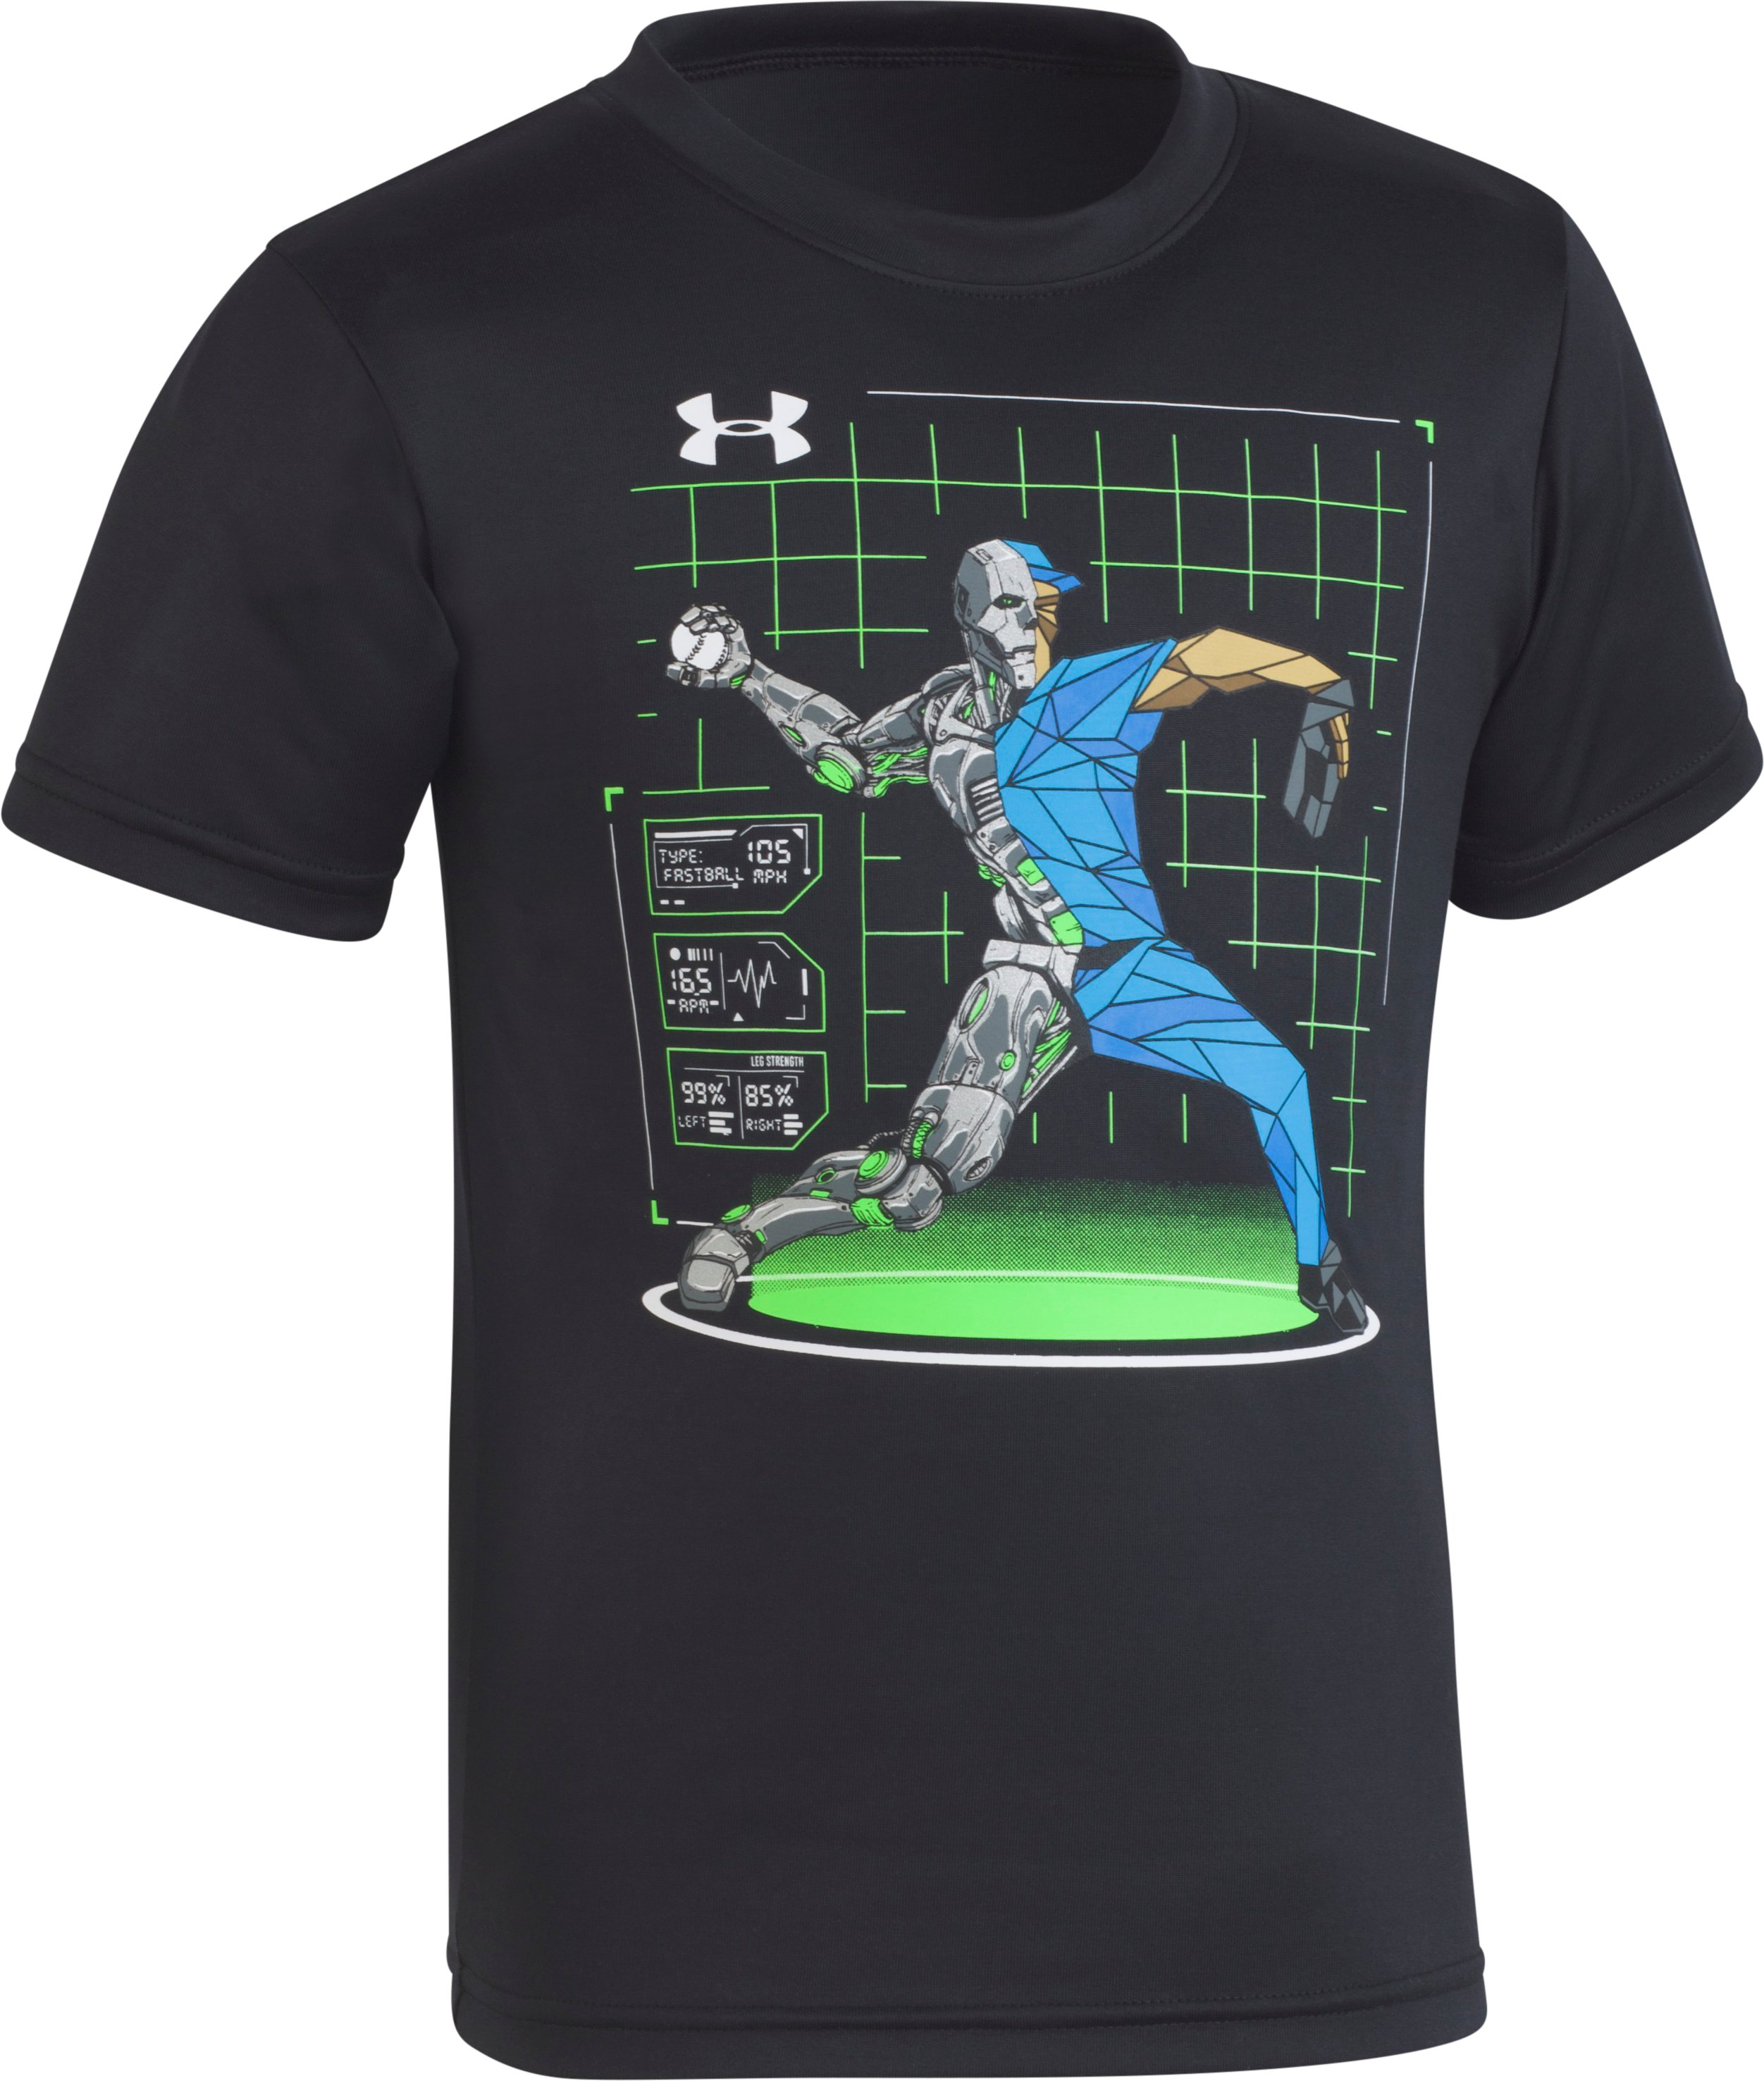 Boys' Toddler UA Baseball Hybrid T-Shirt 1 Color $18.00